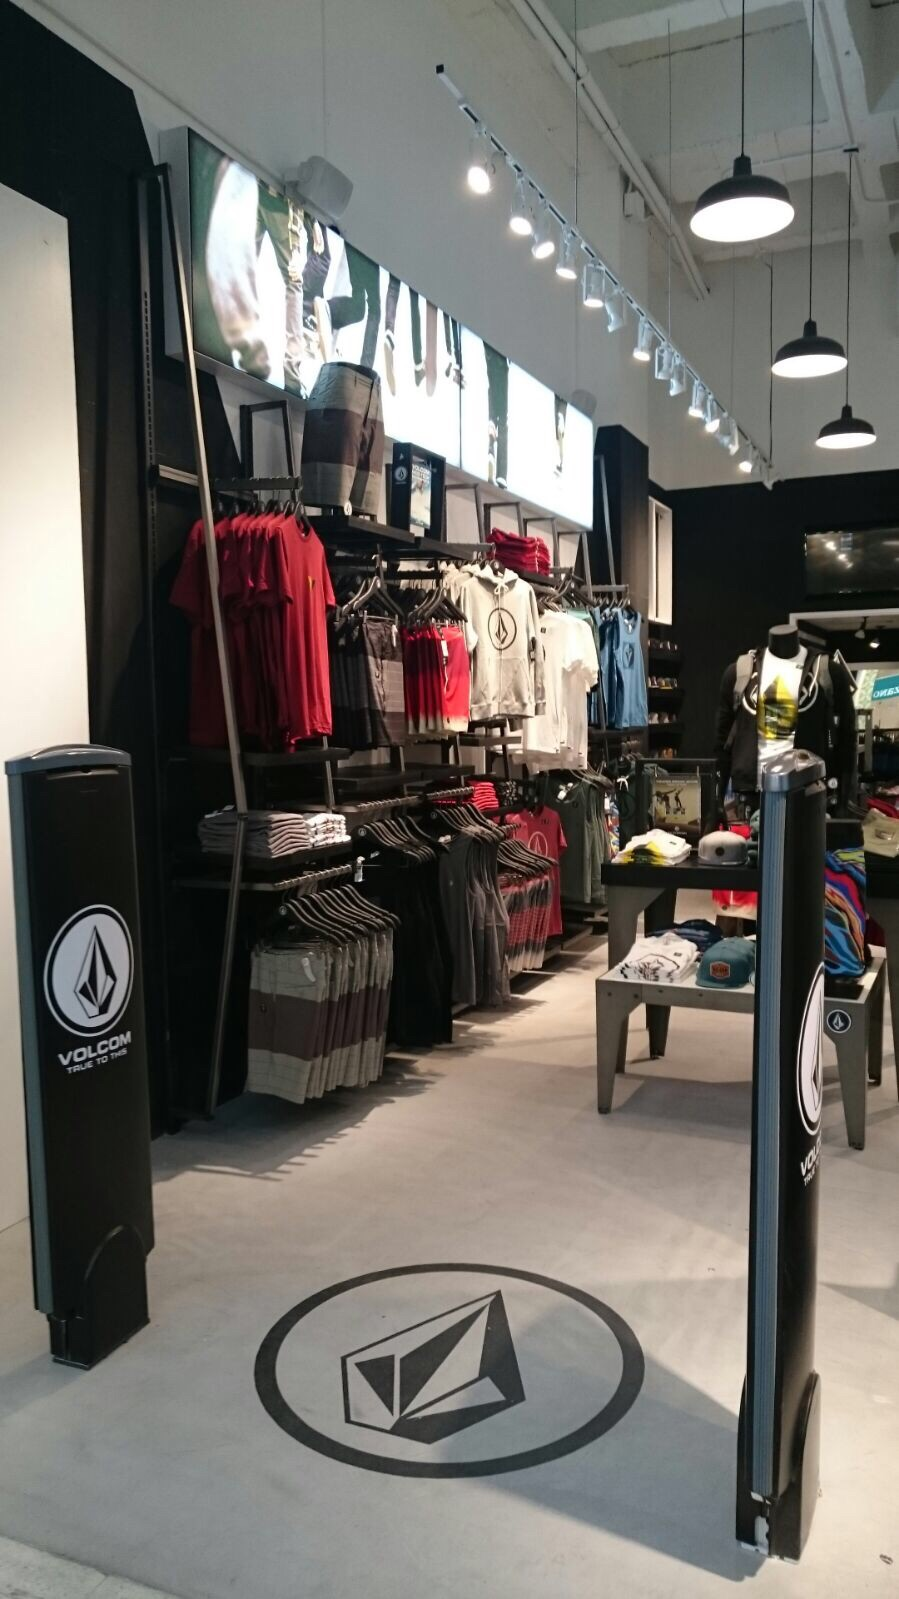 New Volcom Store Opening In Canggu, Bali. KUTA, BALI, September 6, – Volcom proudly announces another store opening in Bali's.